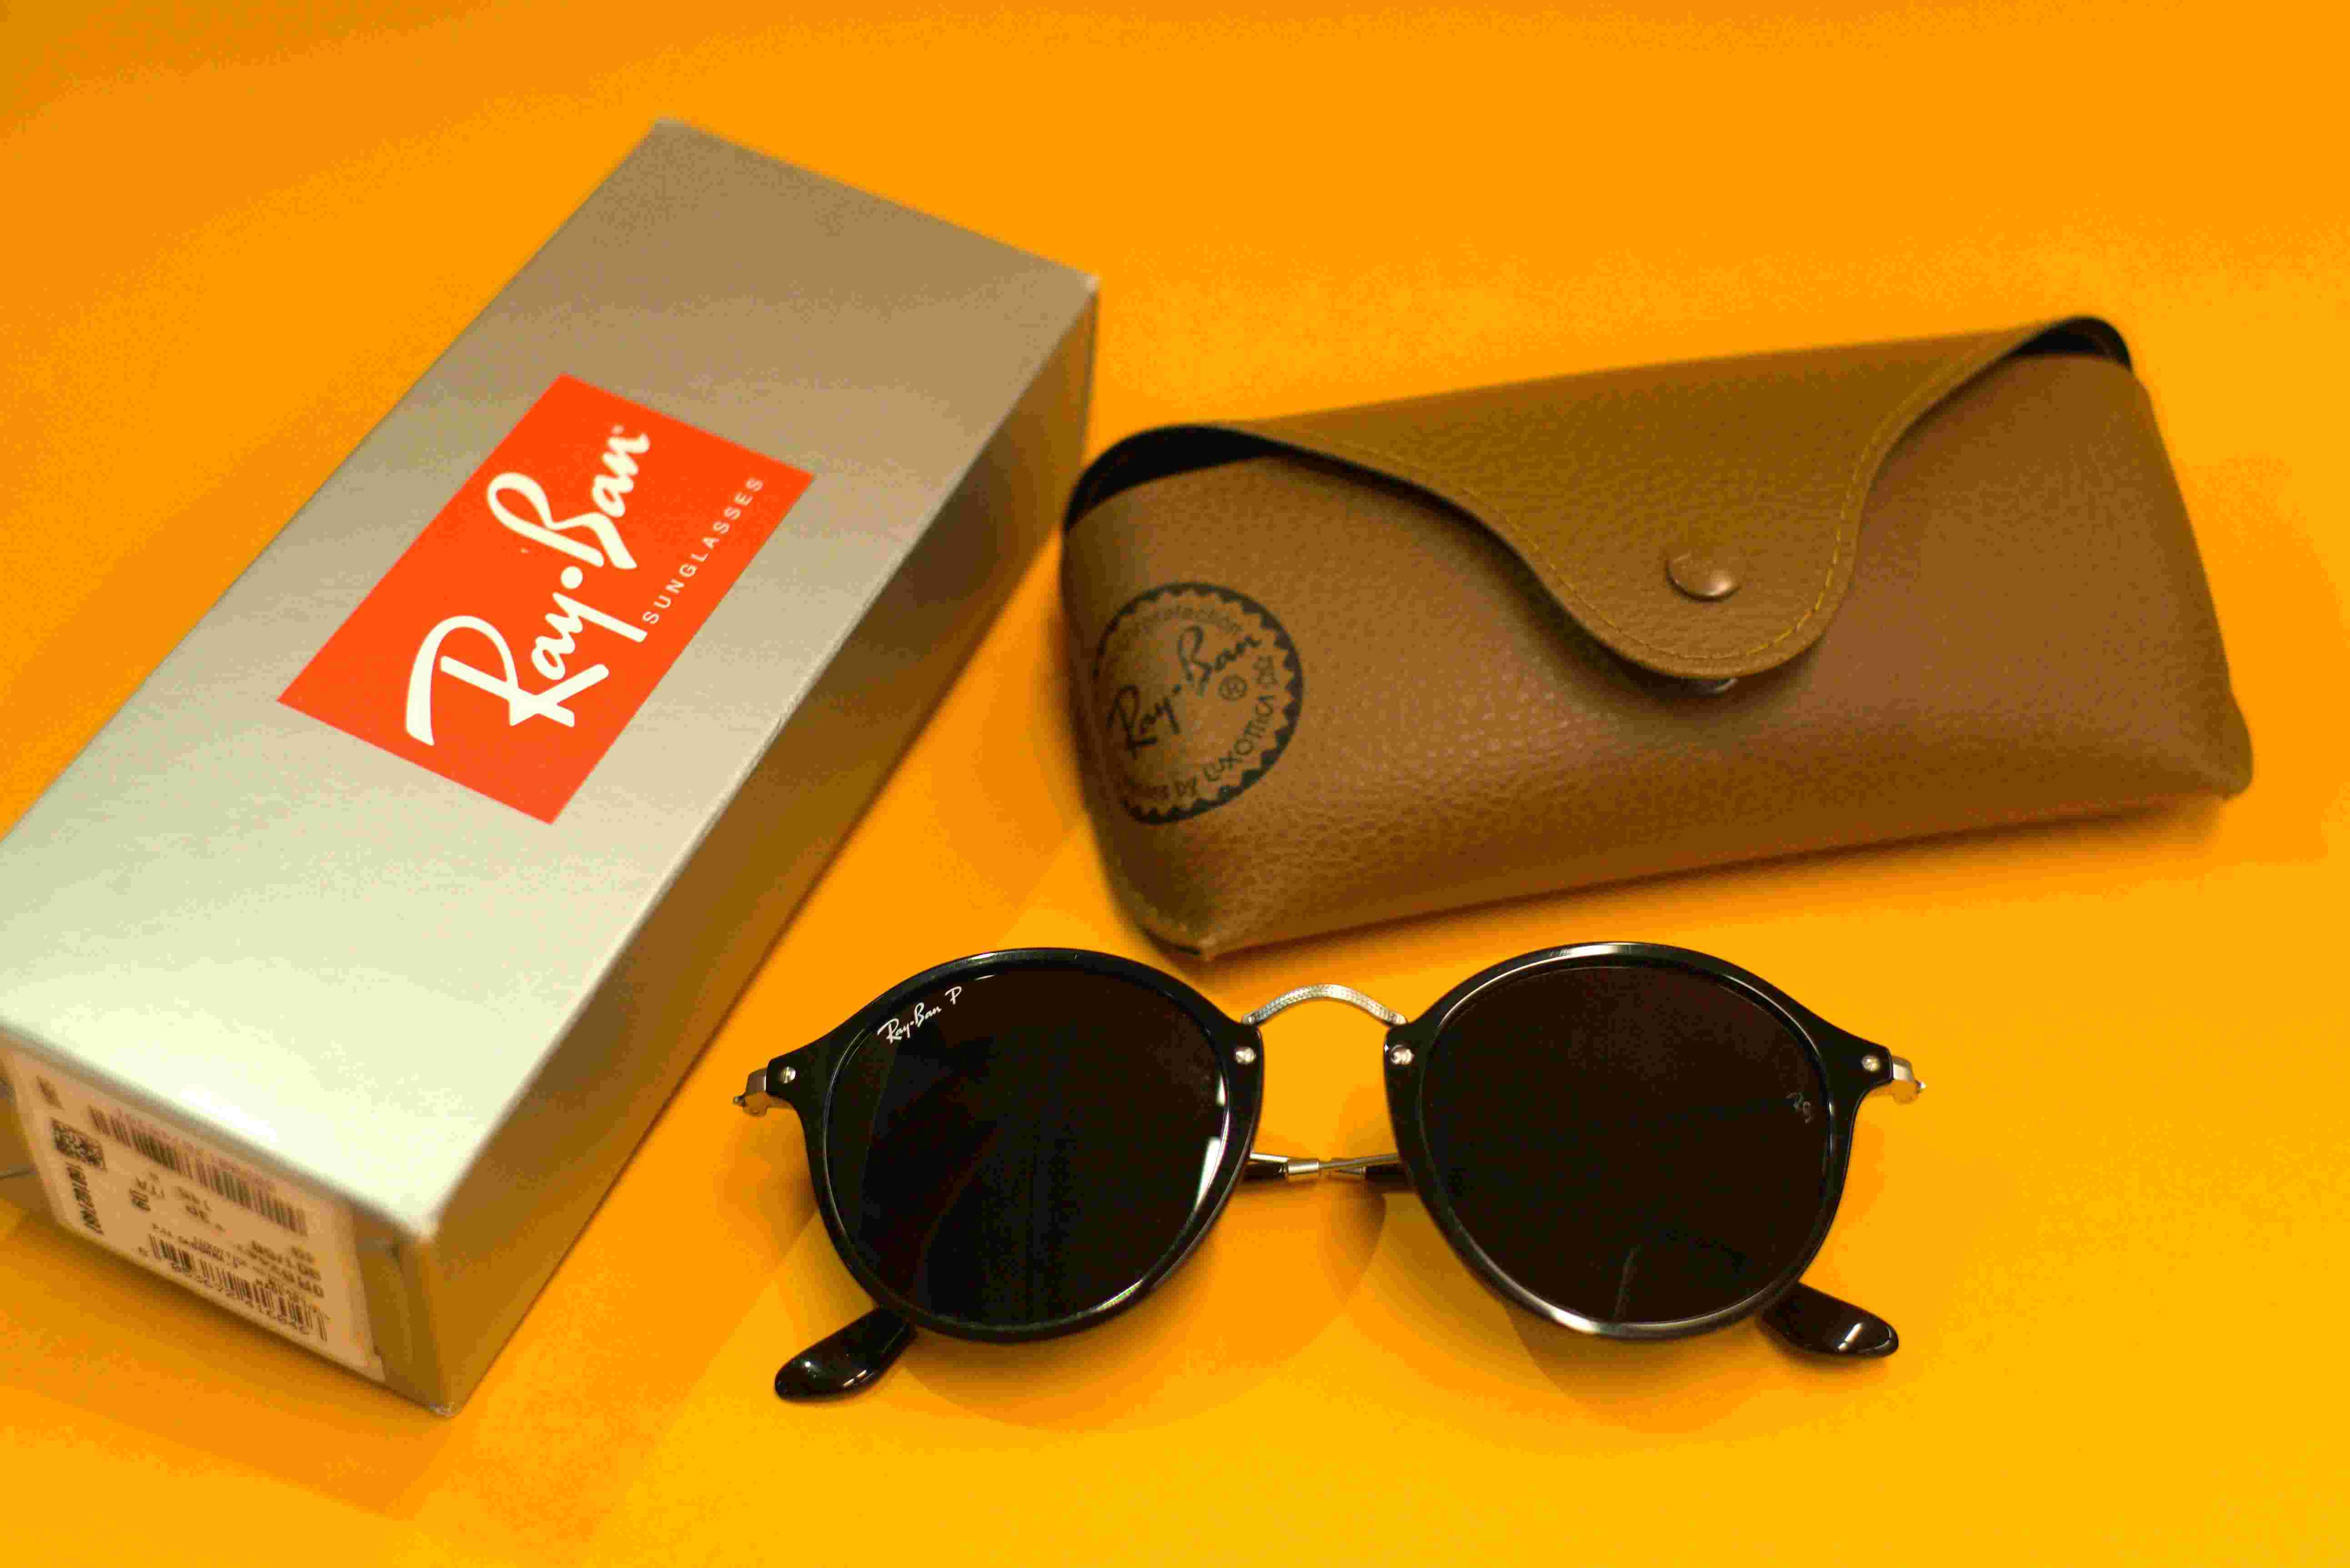 aed93d77ea Guide to spotting authentic Ray-Ban sunglasses